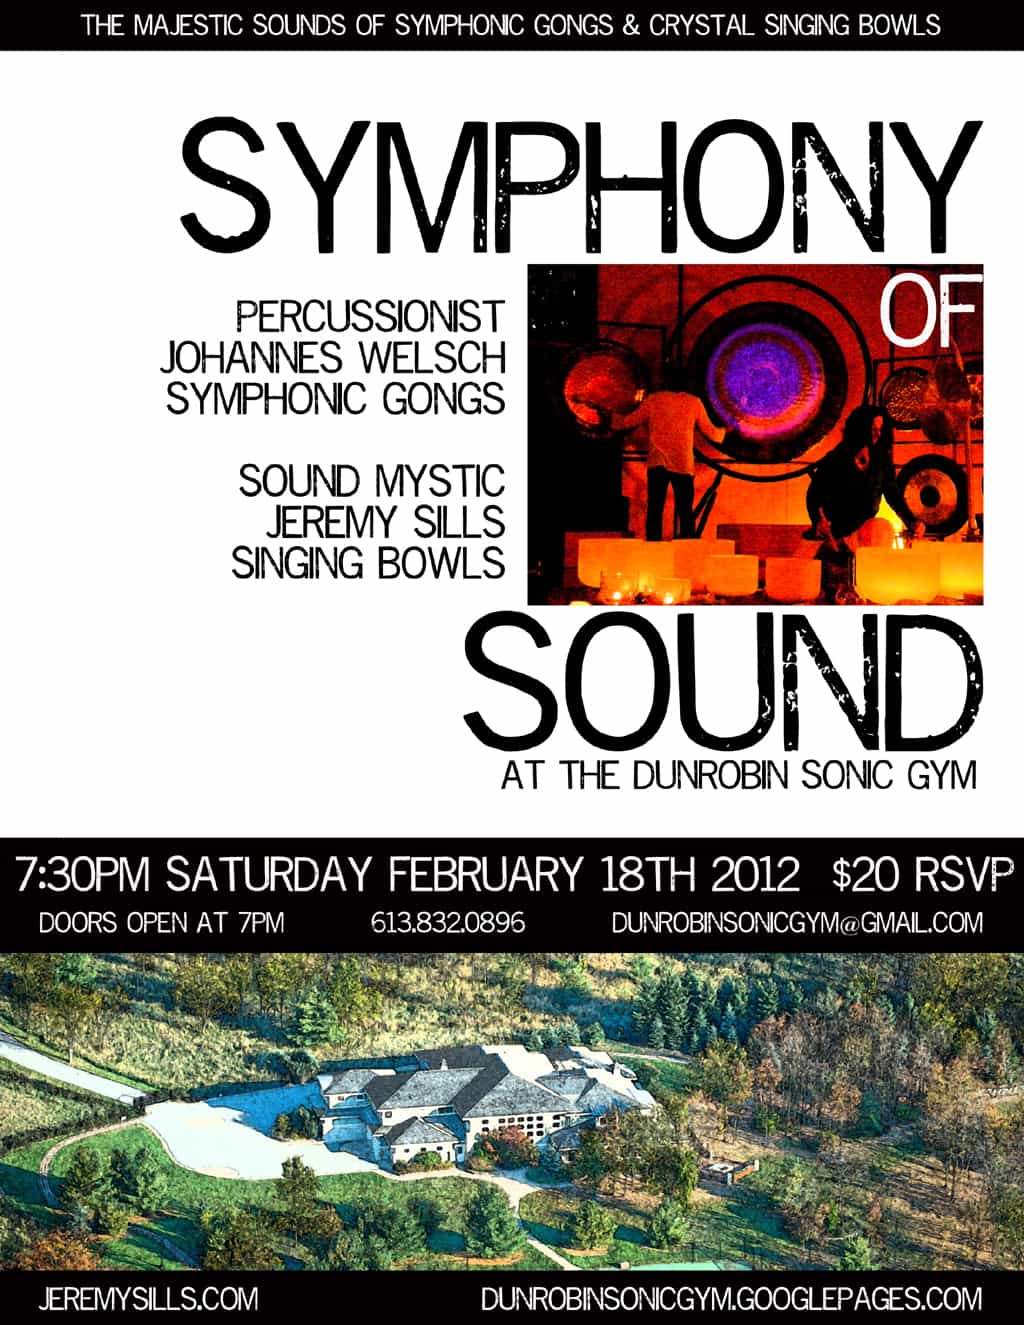 Saturday February 18th 2012 Enjoy The Majestic Sounds of Symphonic Gongs with Crystal & Tibetan Singing Bowls Dunrobin Sonic Gym Percussionist Johannes Welsch - Symphonic Gongs Sound Mystic Jeremy Sills – Singing Bowls & Voice Admission: $20 Register by e-mail or phone: DunrobinSonicGym@gmail.com or (613) 832 0896 sites.google.com/site/dunrobinsonicgym